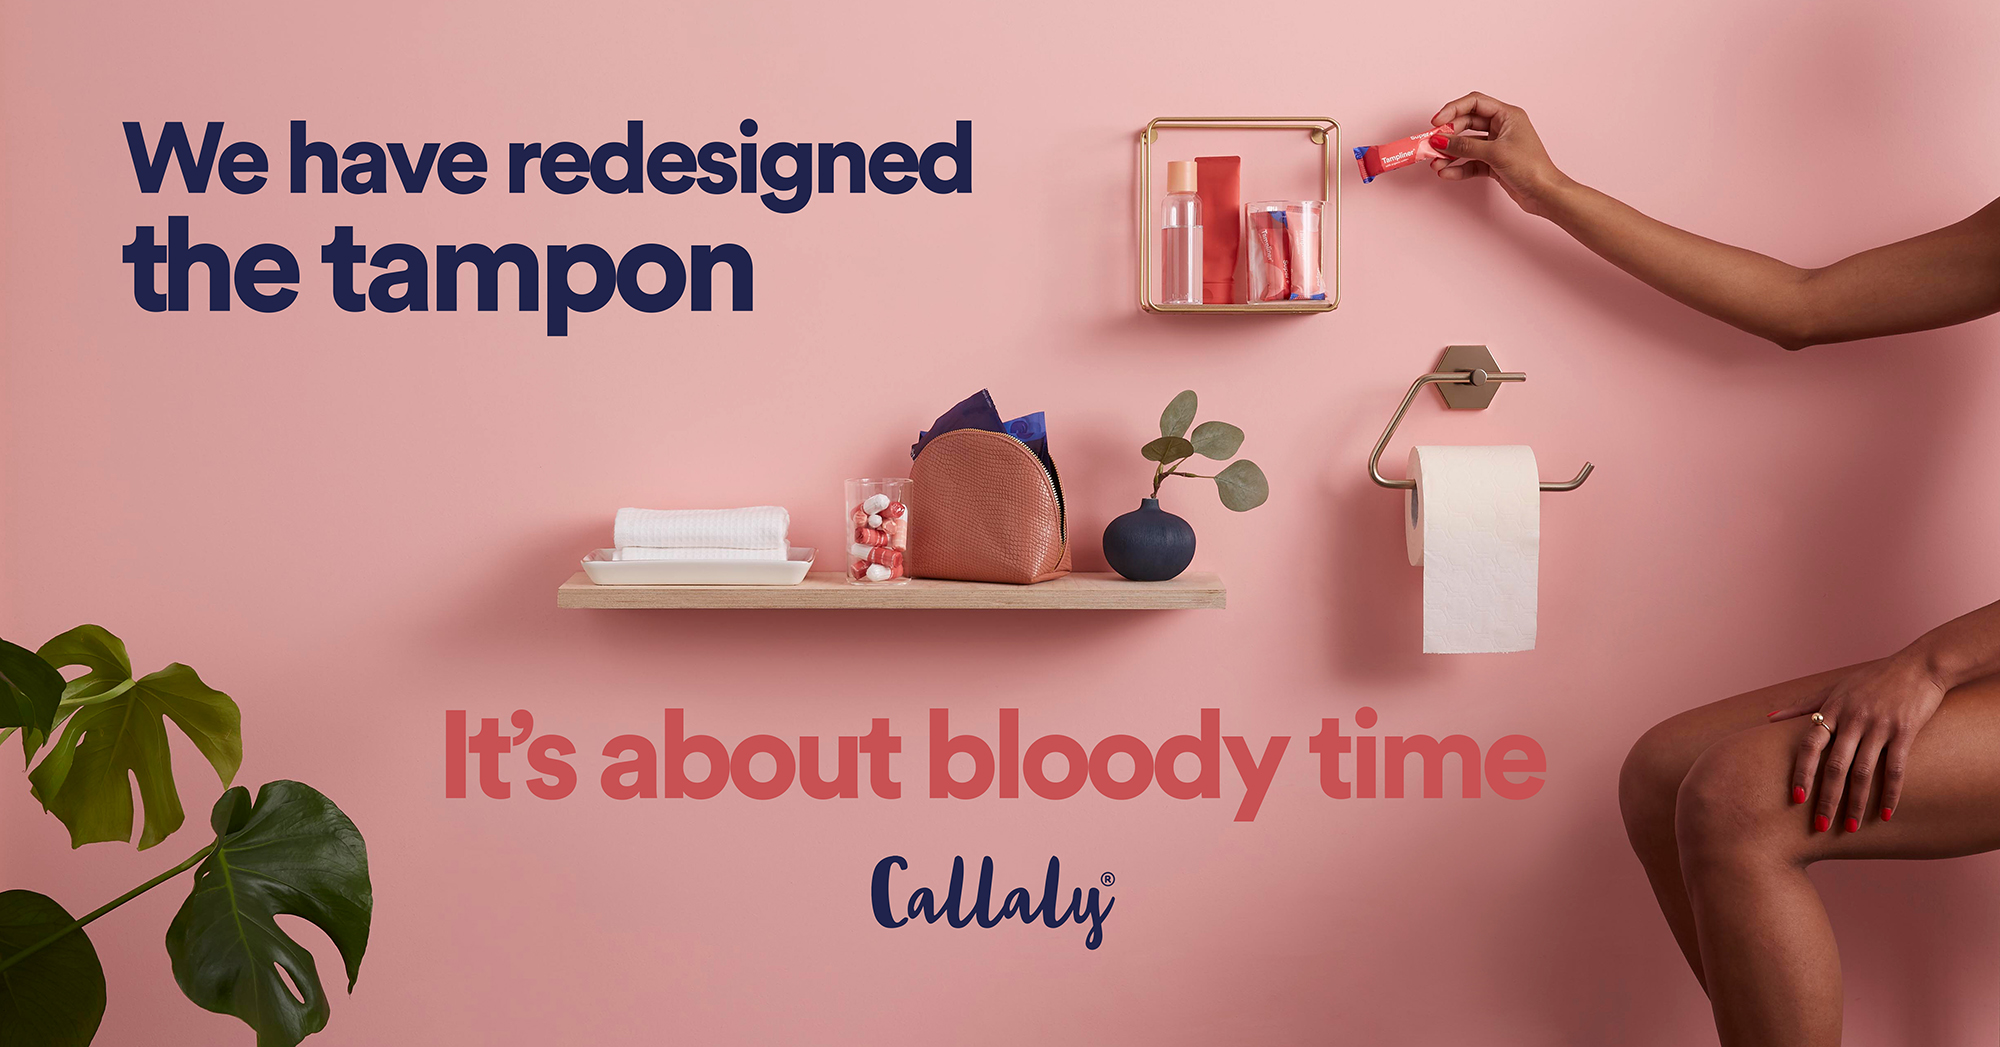 5_Callaly_comms_bloodytime